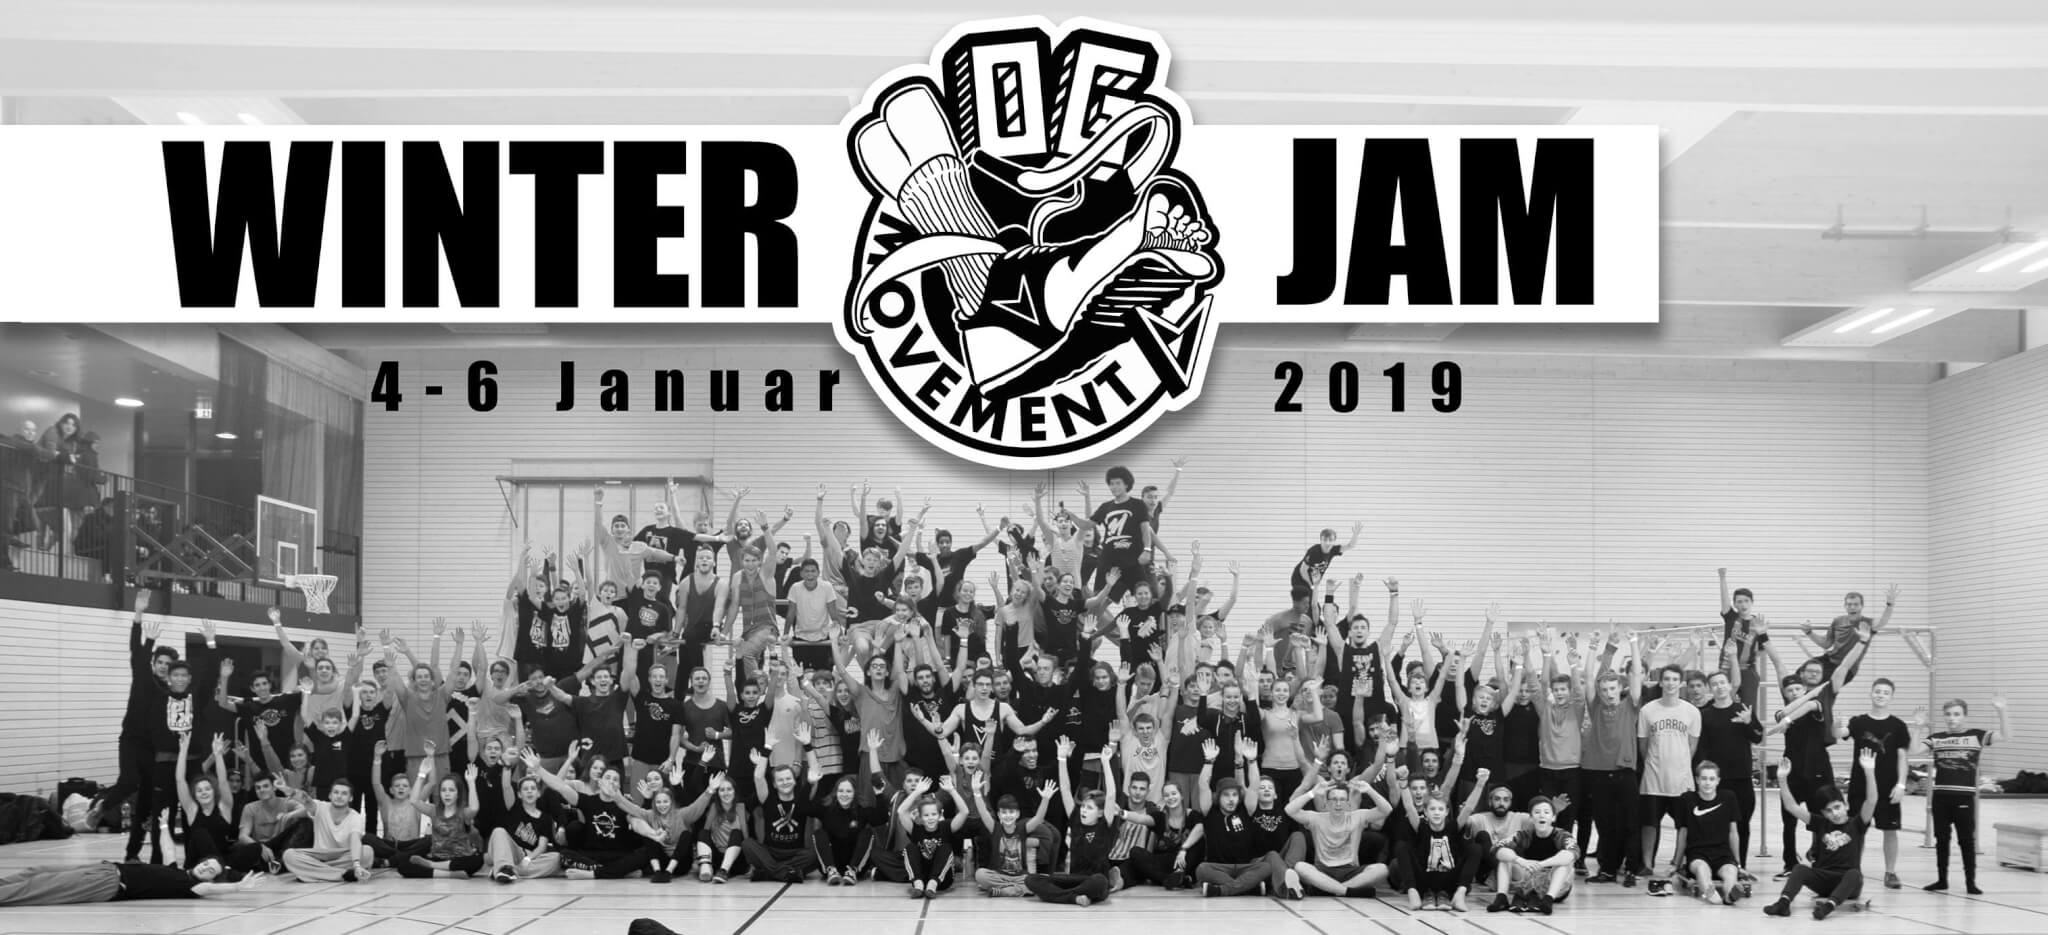 Movement Winter Jam